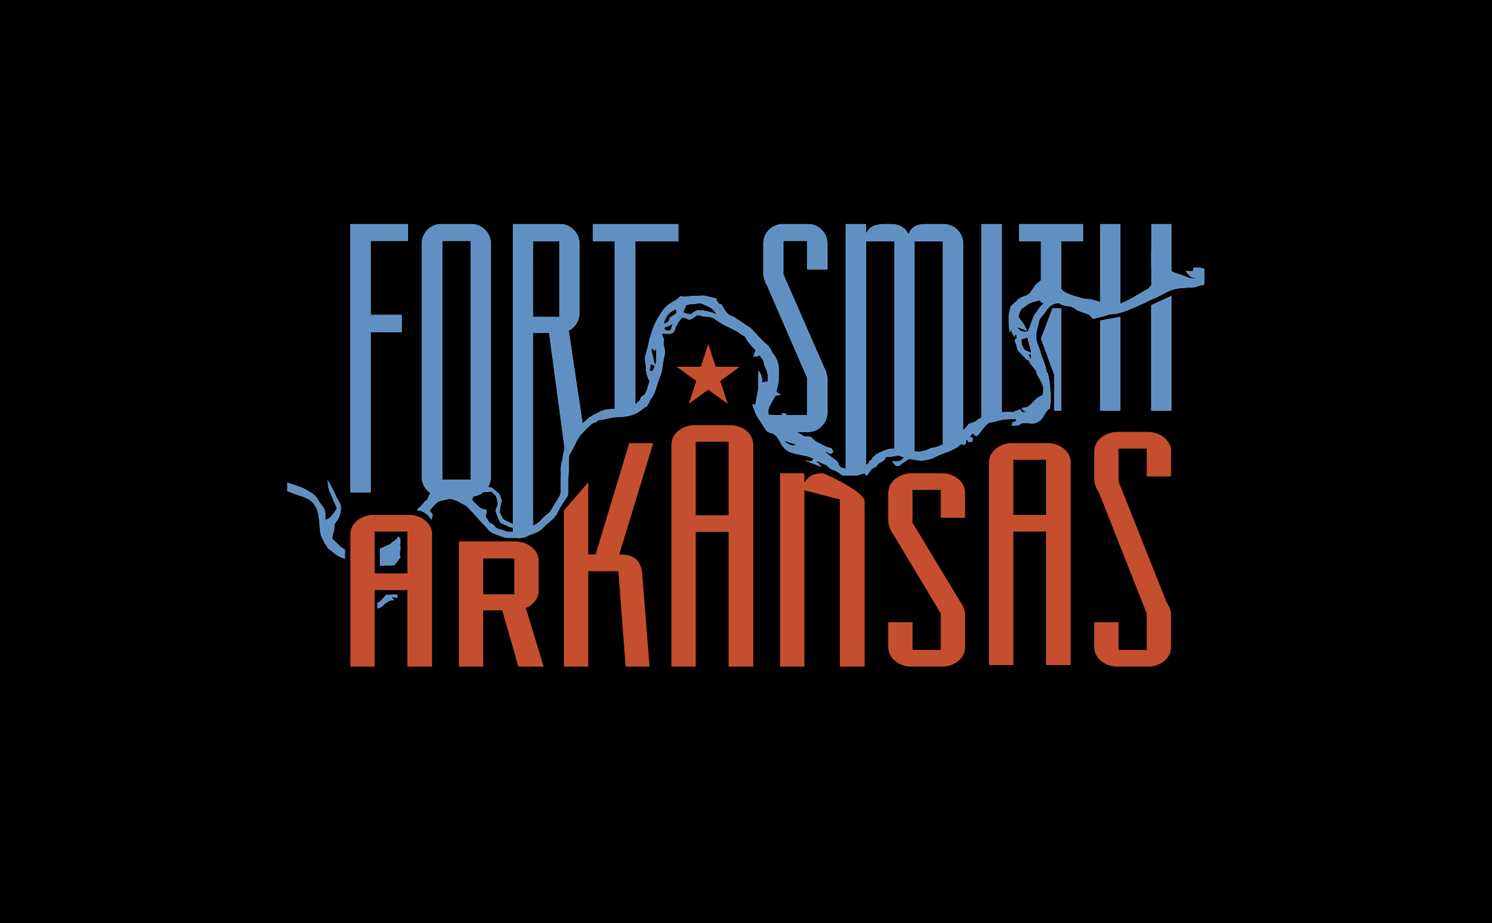 sam broom fort smith arkansas snapchat geofilter blue orange graphic design